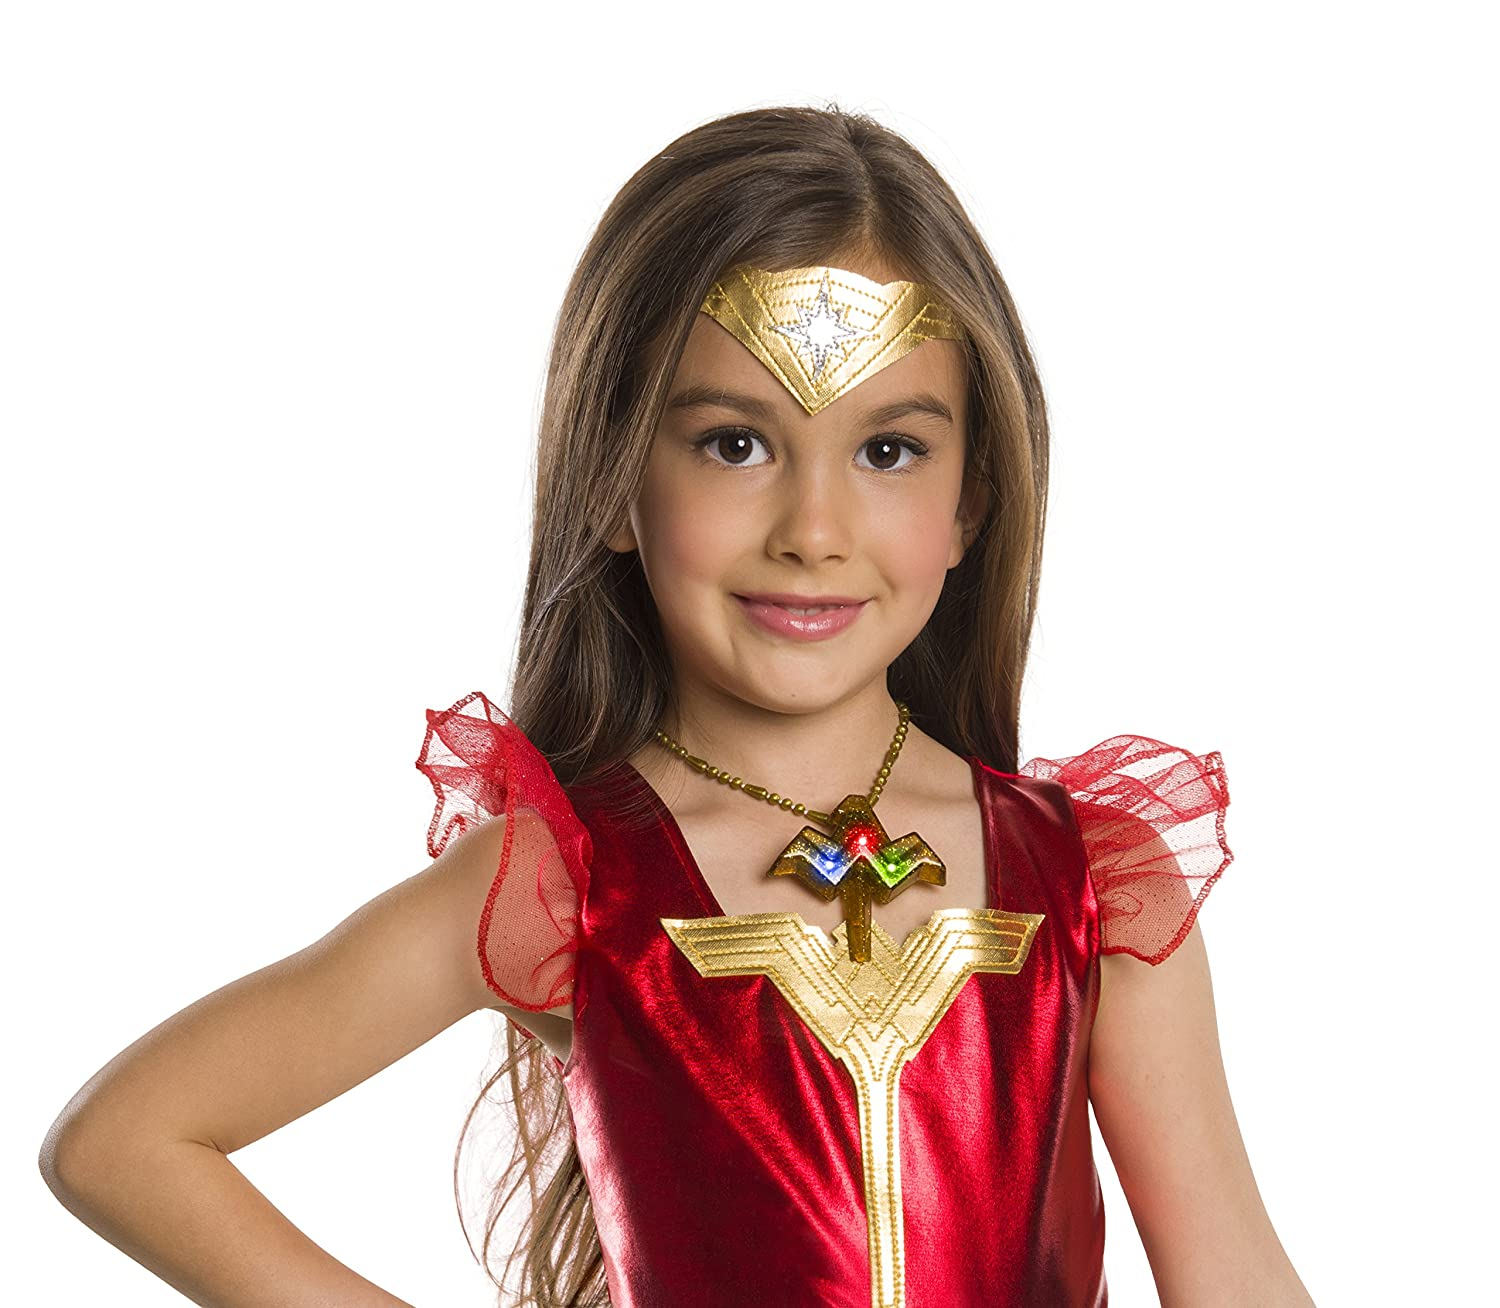 Rubies Costume Company 34385/_NS Girls Justice League Wonder Light-Up Belt Costume One Size